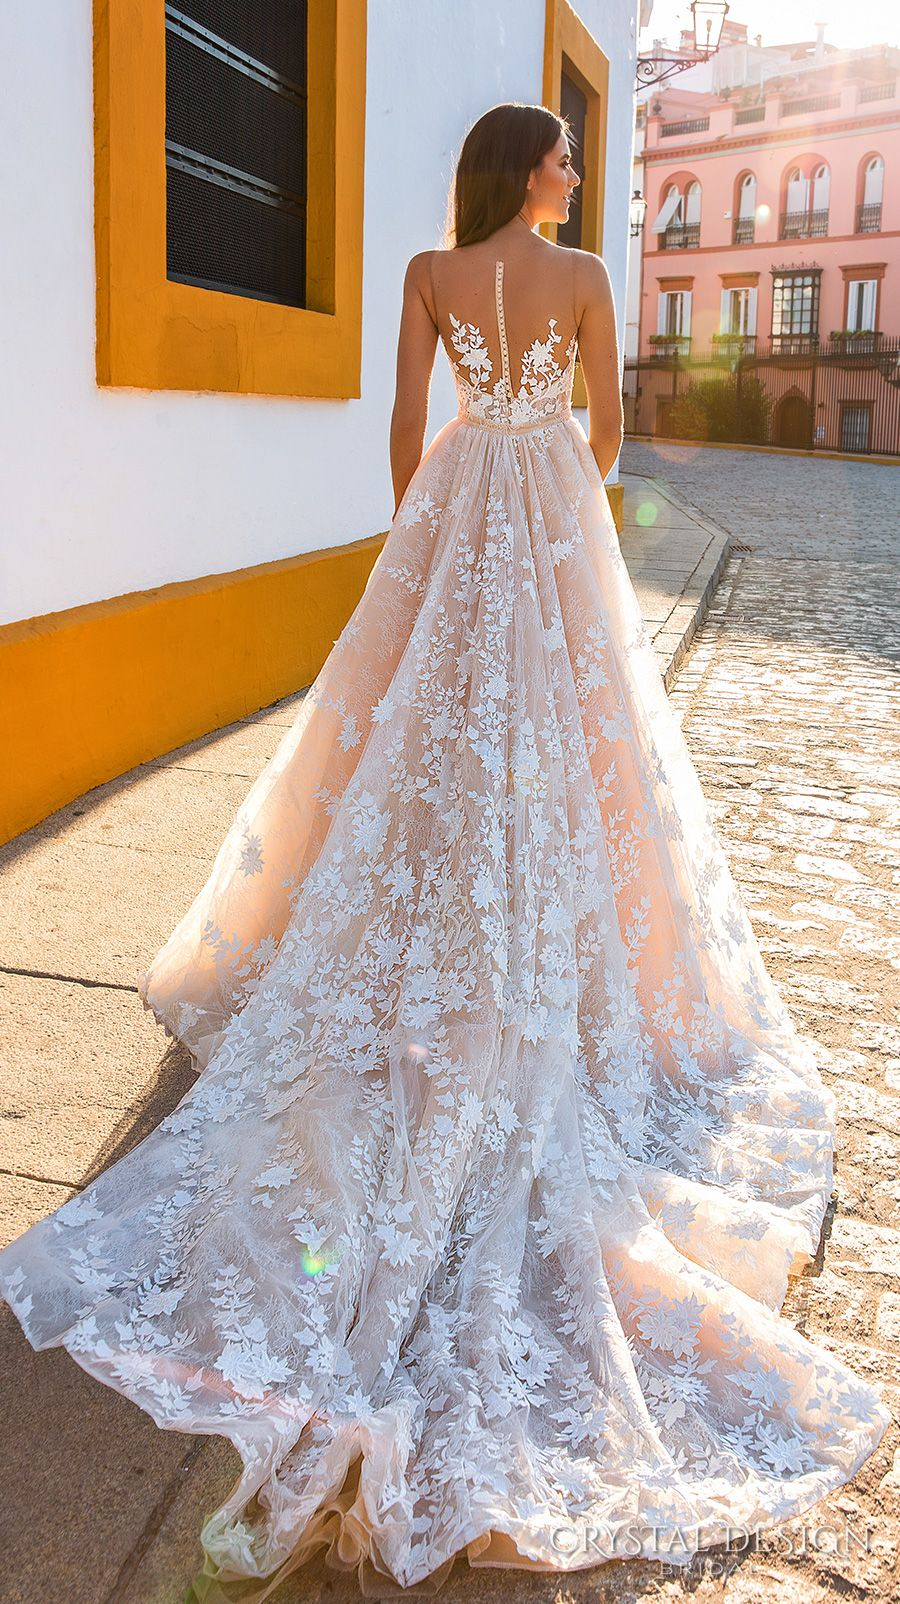 Wedding Gown Design Ideas : Beautiful wedding dresses from the crystal design